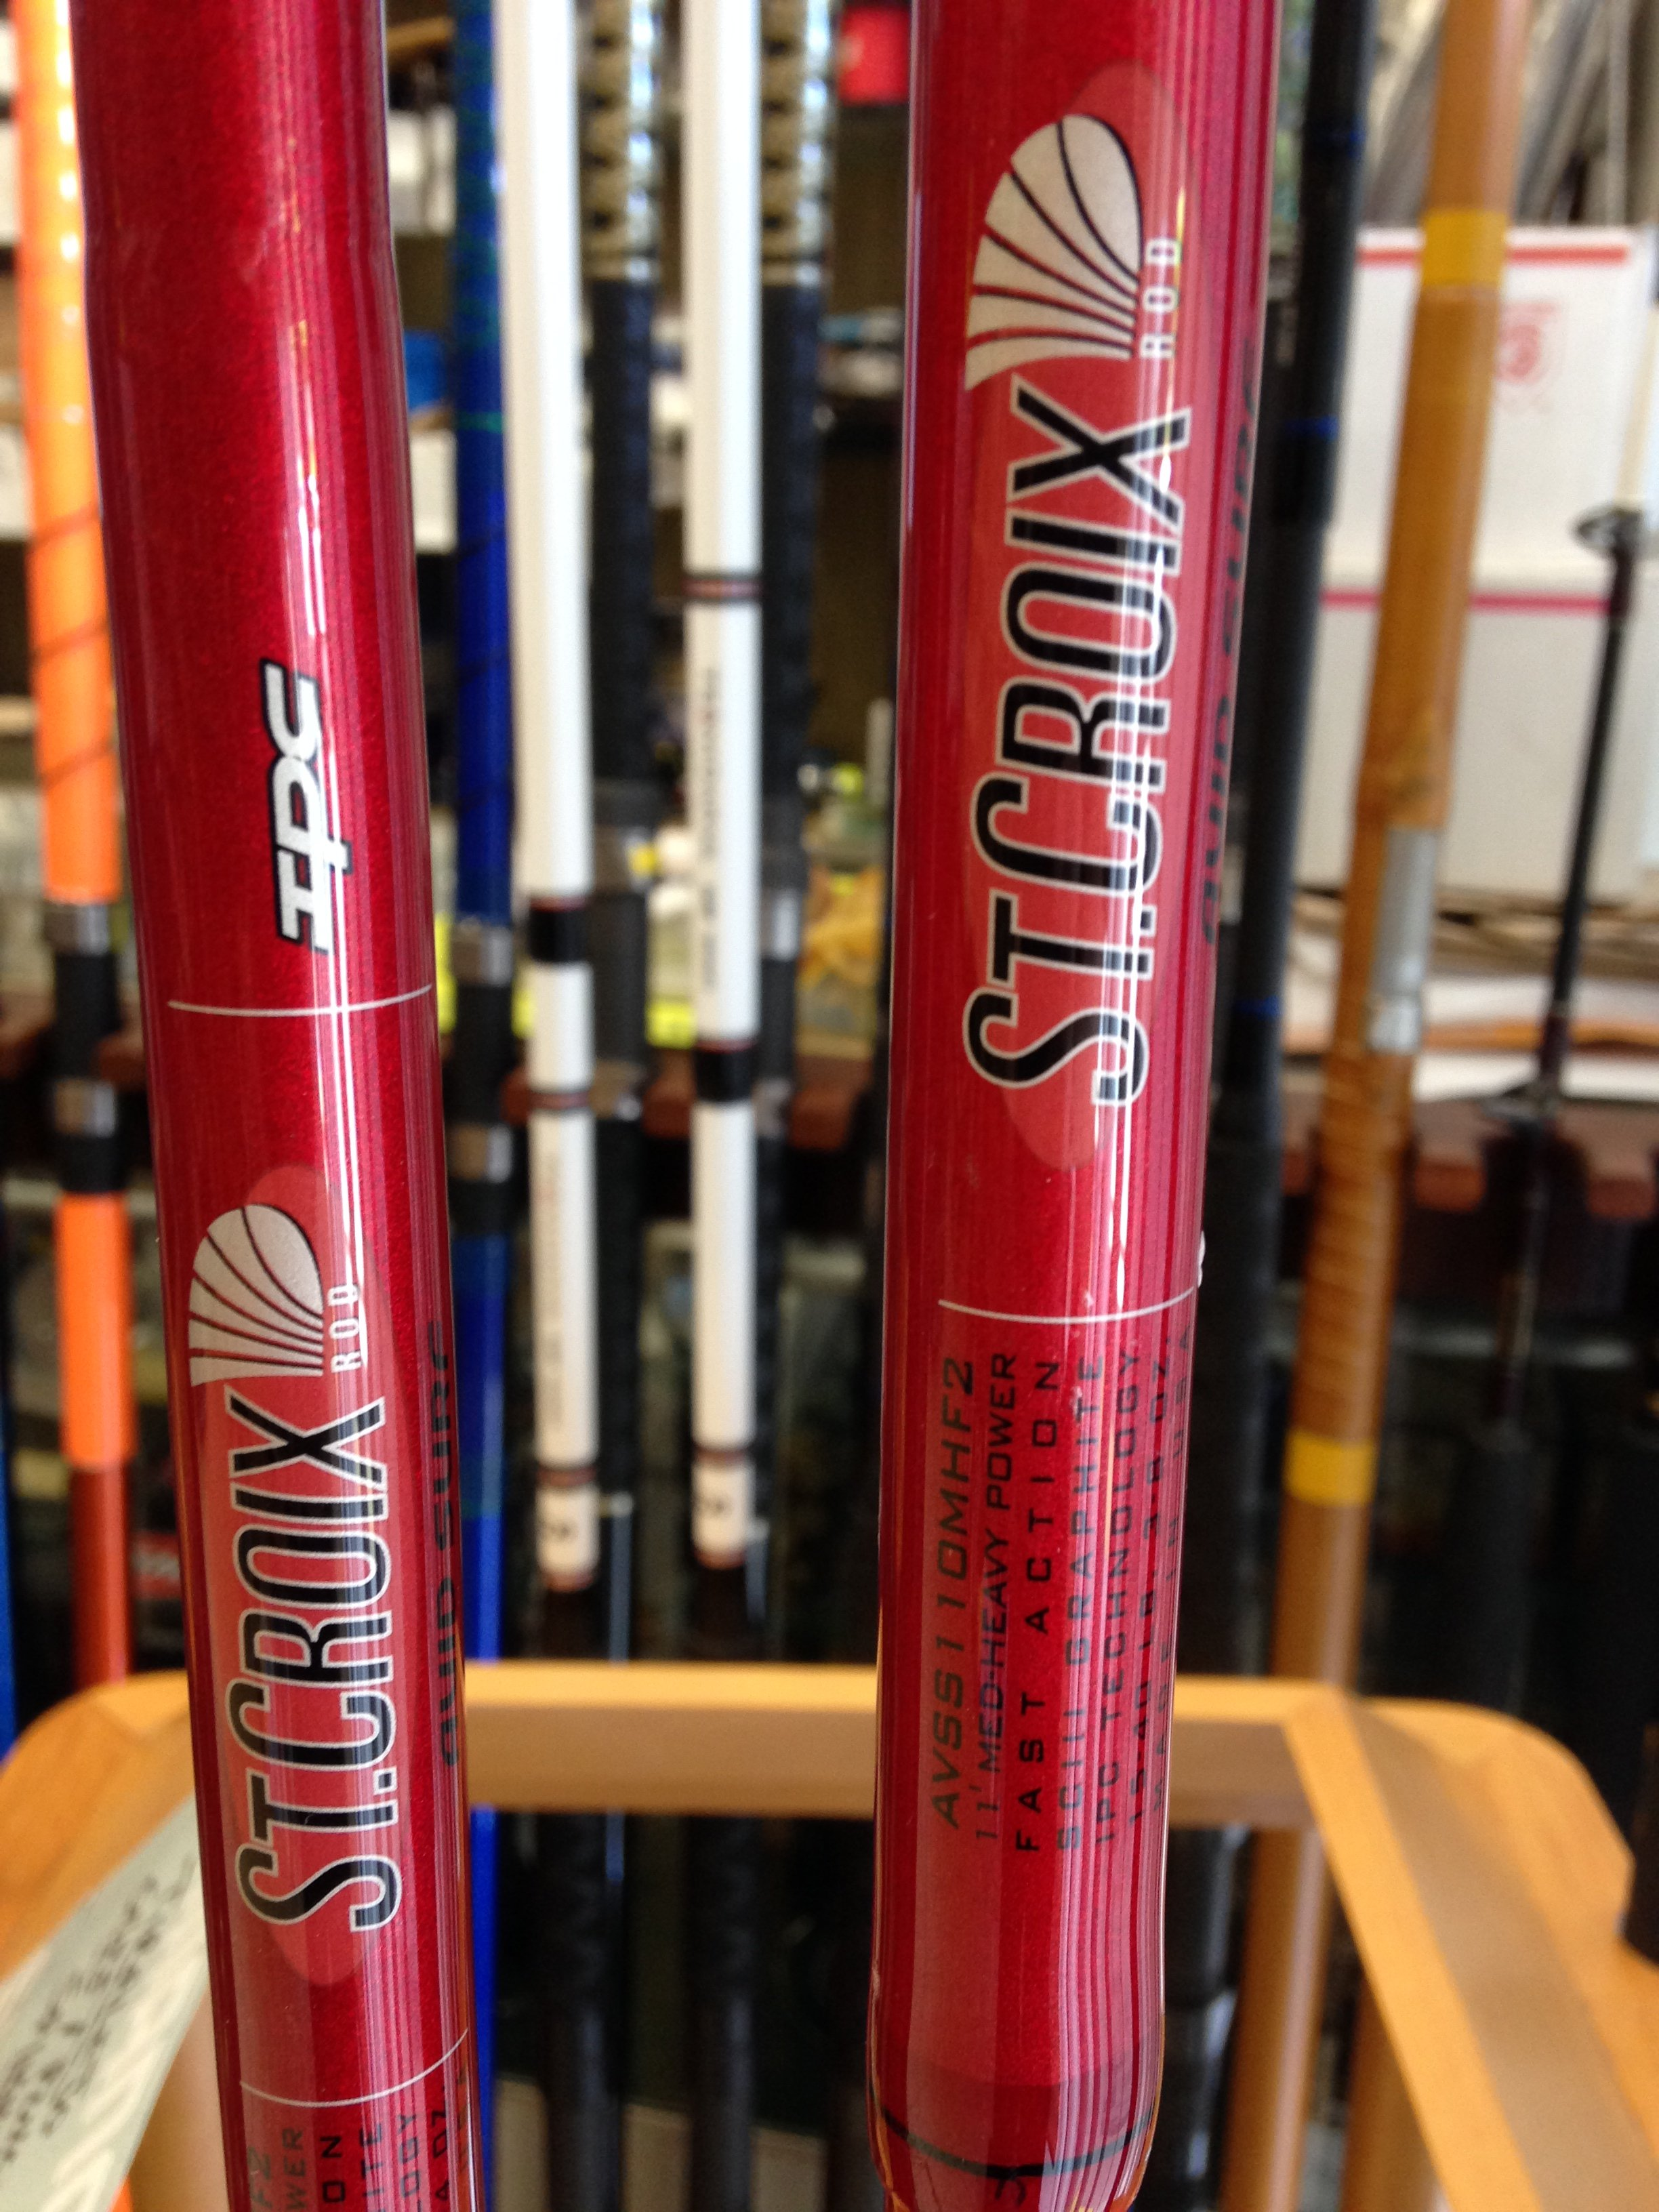 St. Croix Wild River, Avid, Legend Elite Spinning Rods and Avid Surf Rods!